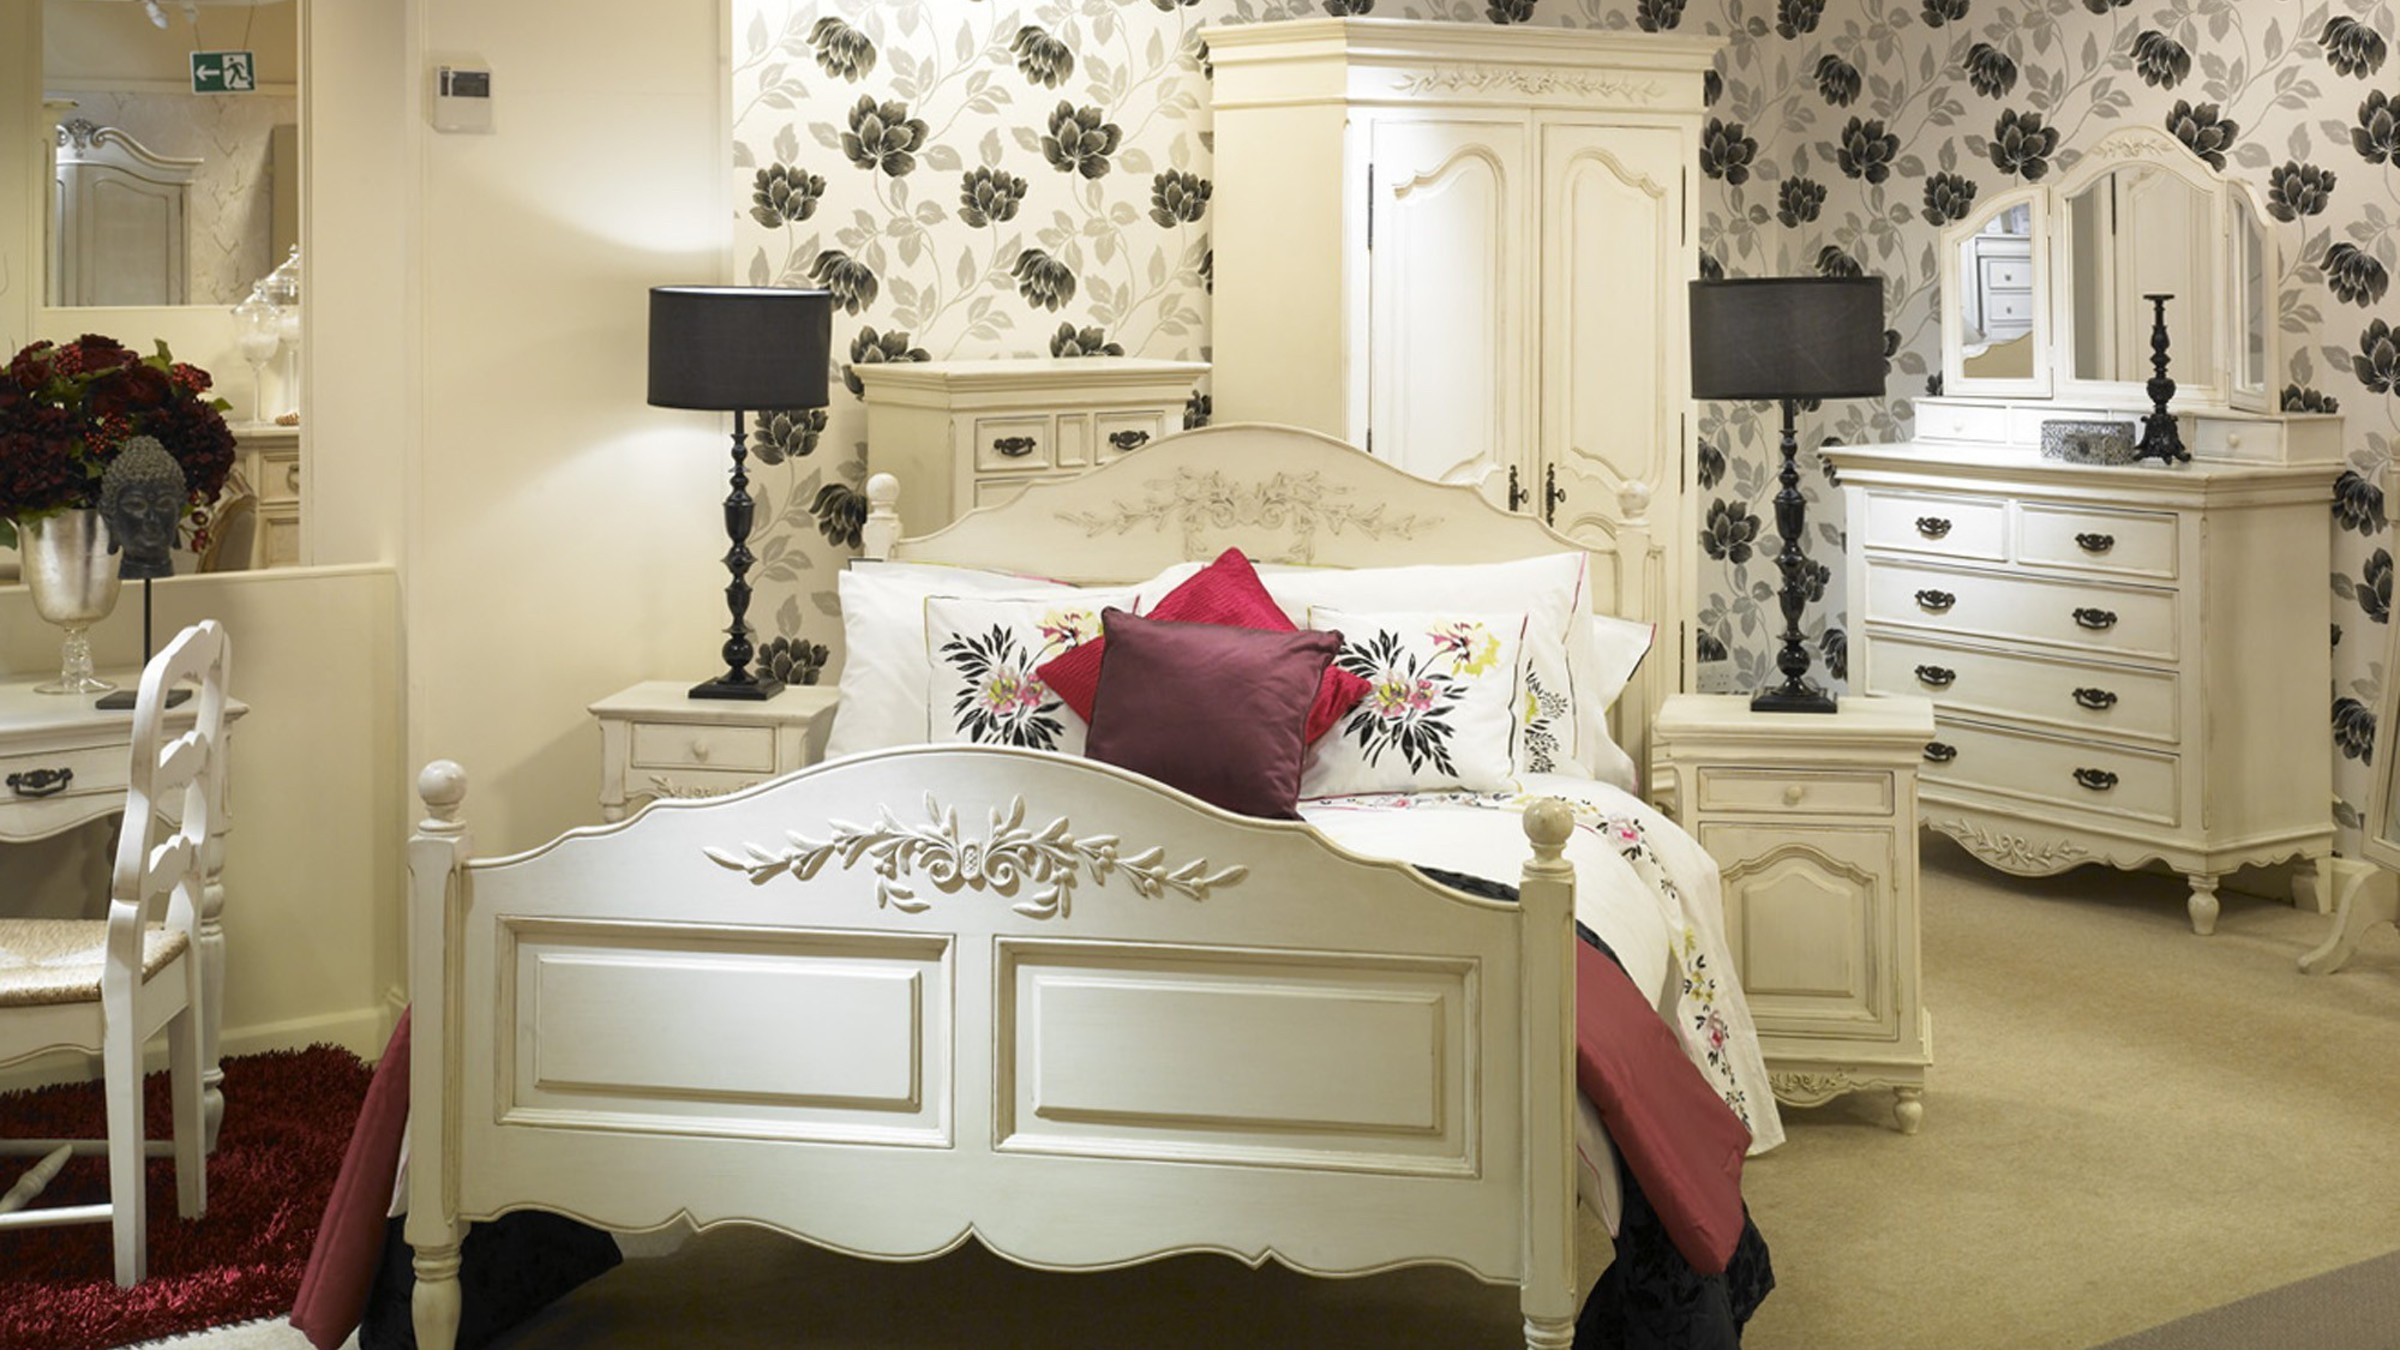 Wallpaper resolutions. Bedroom romance wallpaper   AllWallpaper in  16086   PC   en